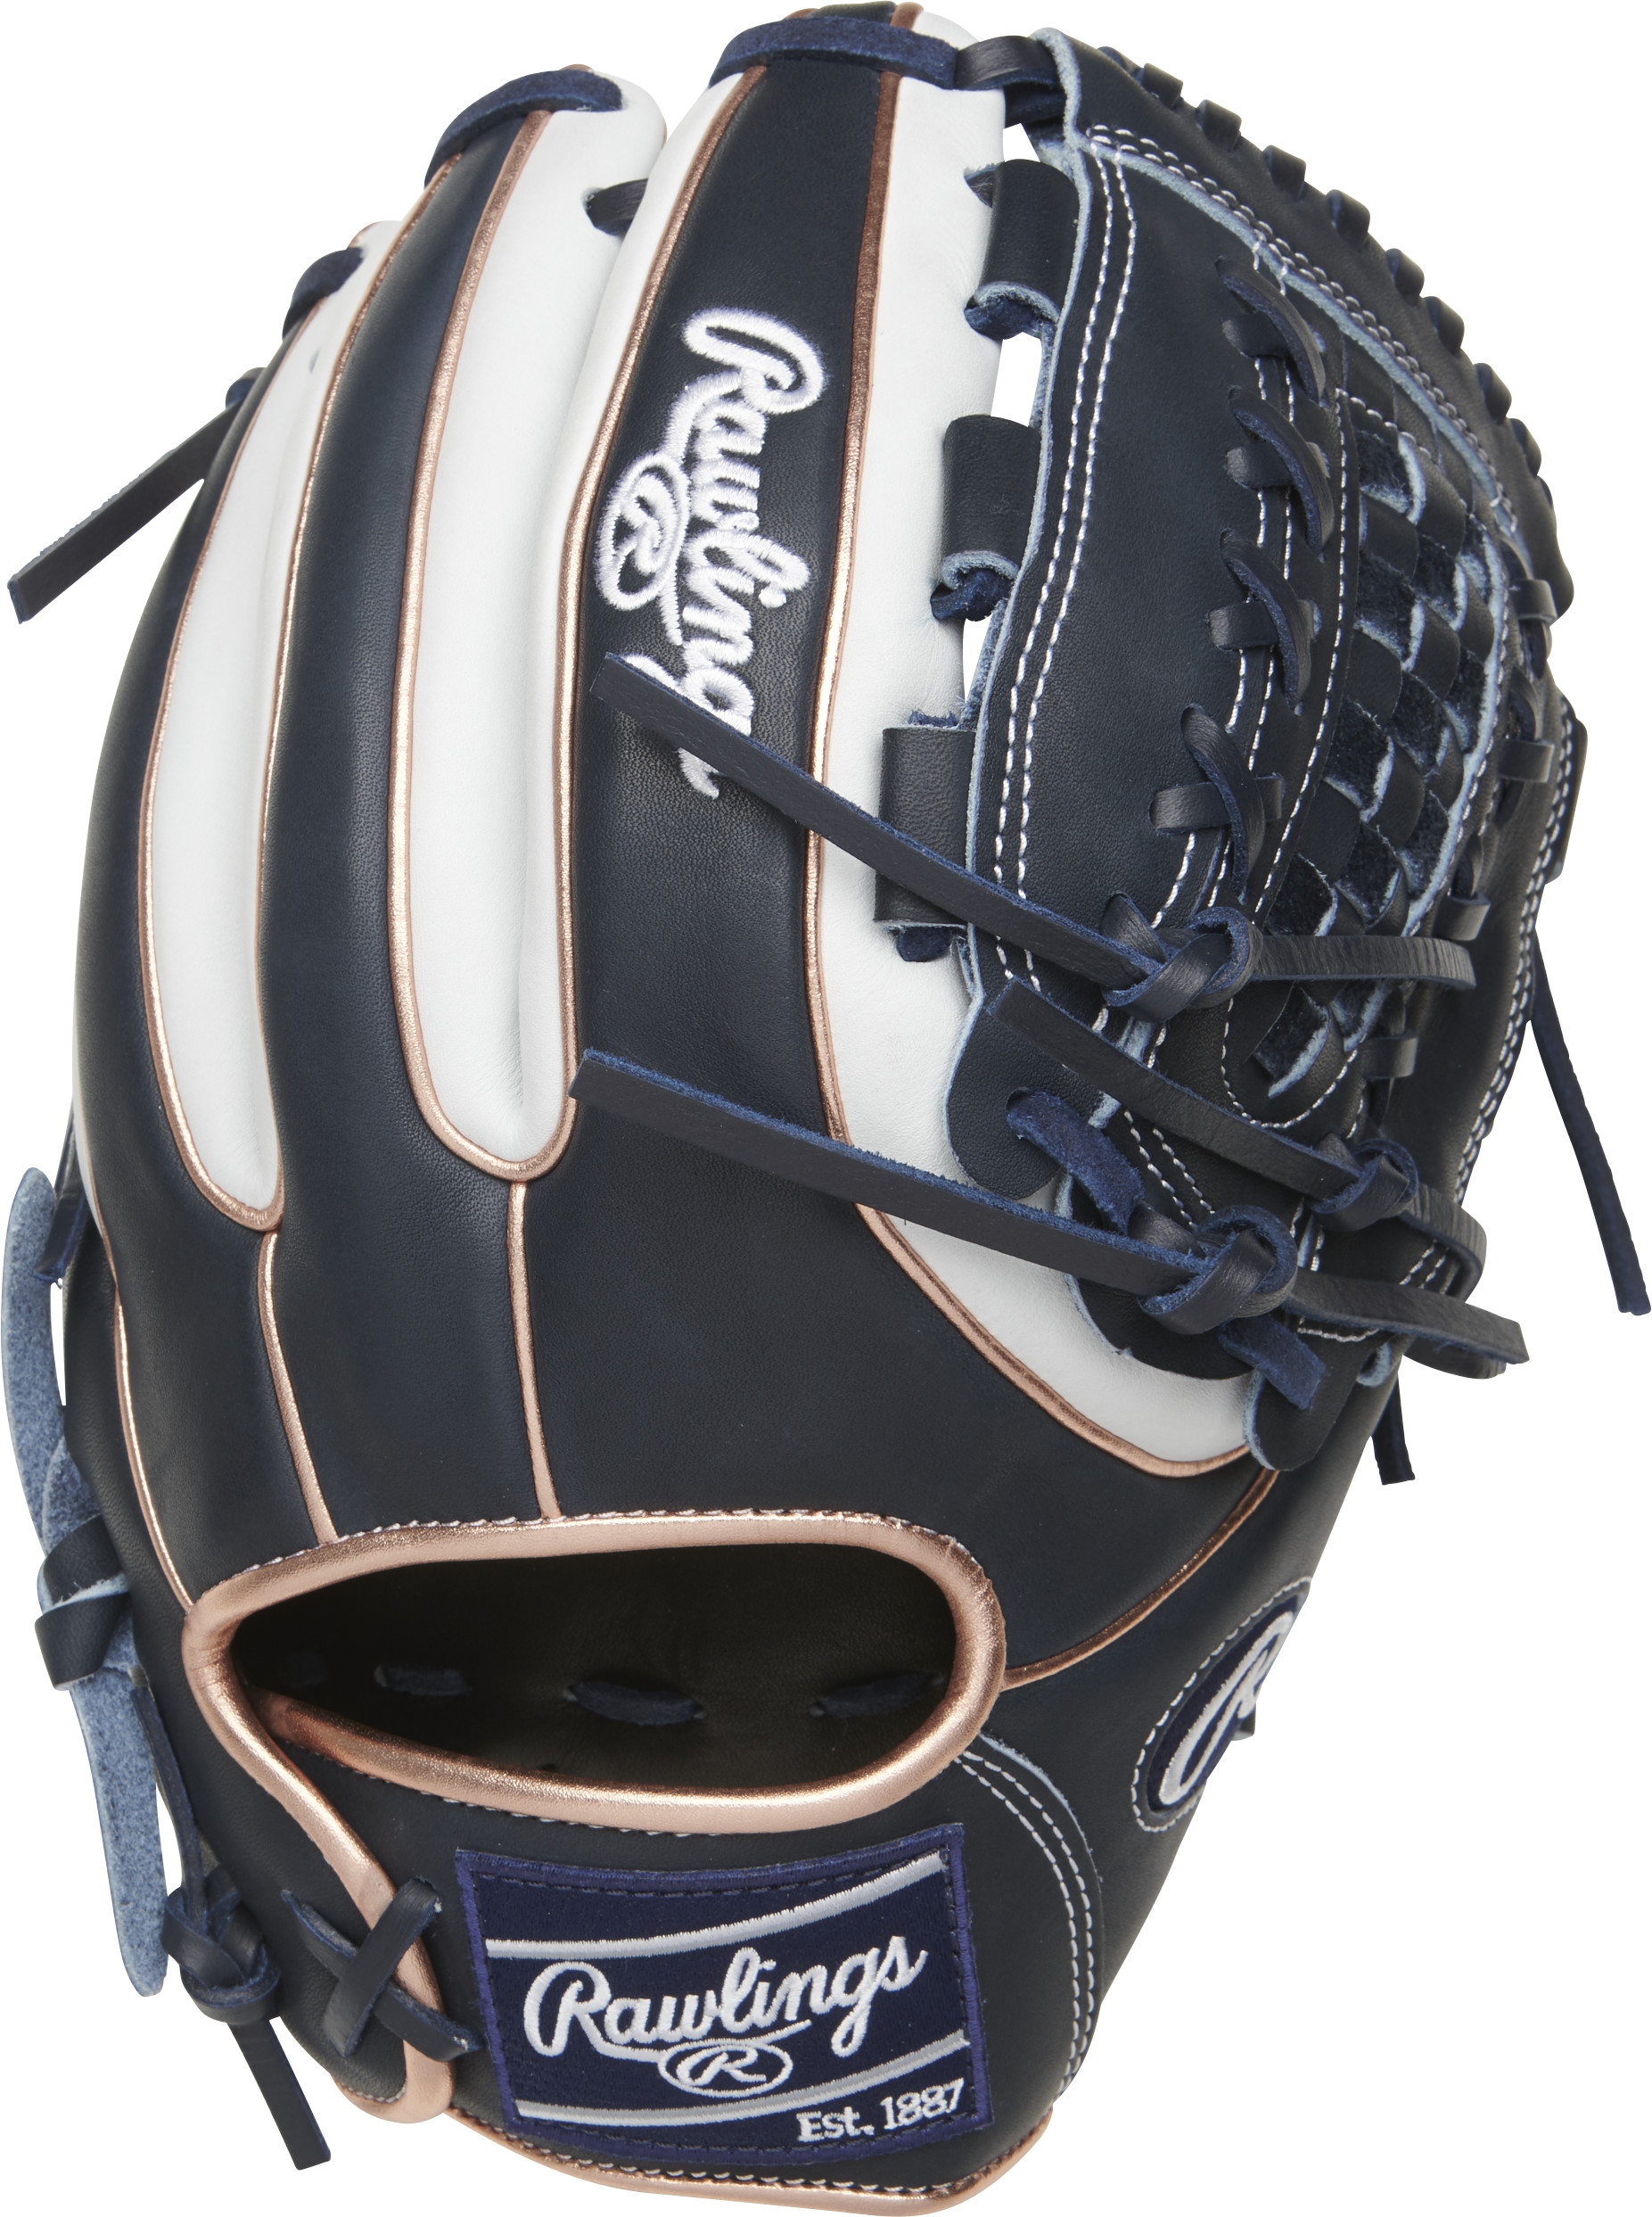 http://www.bestbatdeals.com/images/rawlingsgloves/PRO716SB-18NW-2.jpg